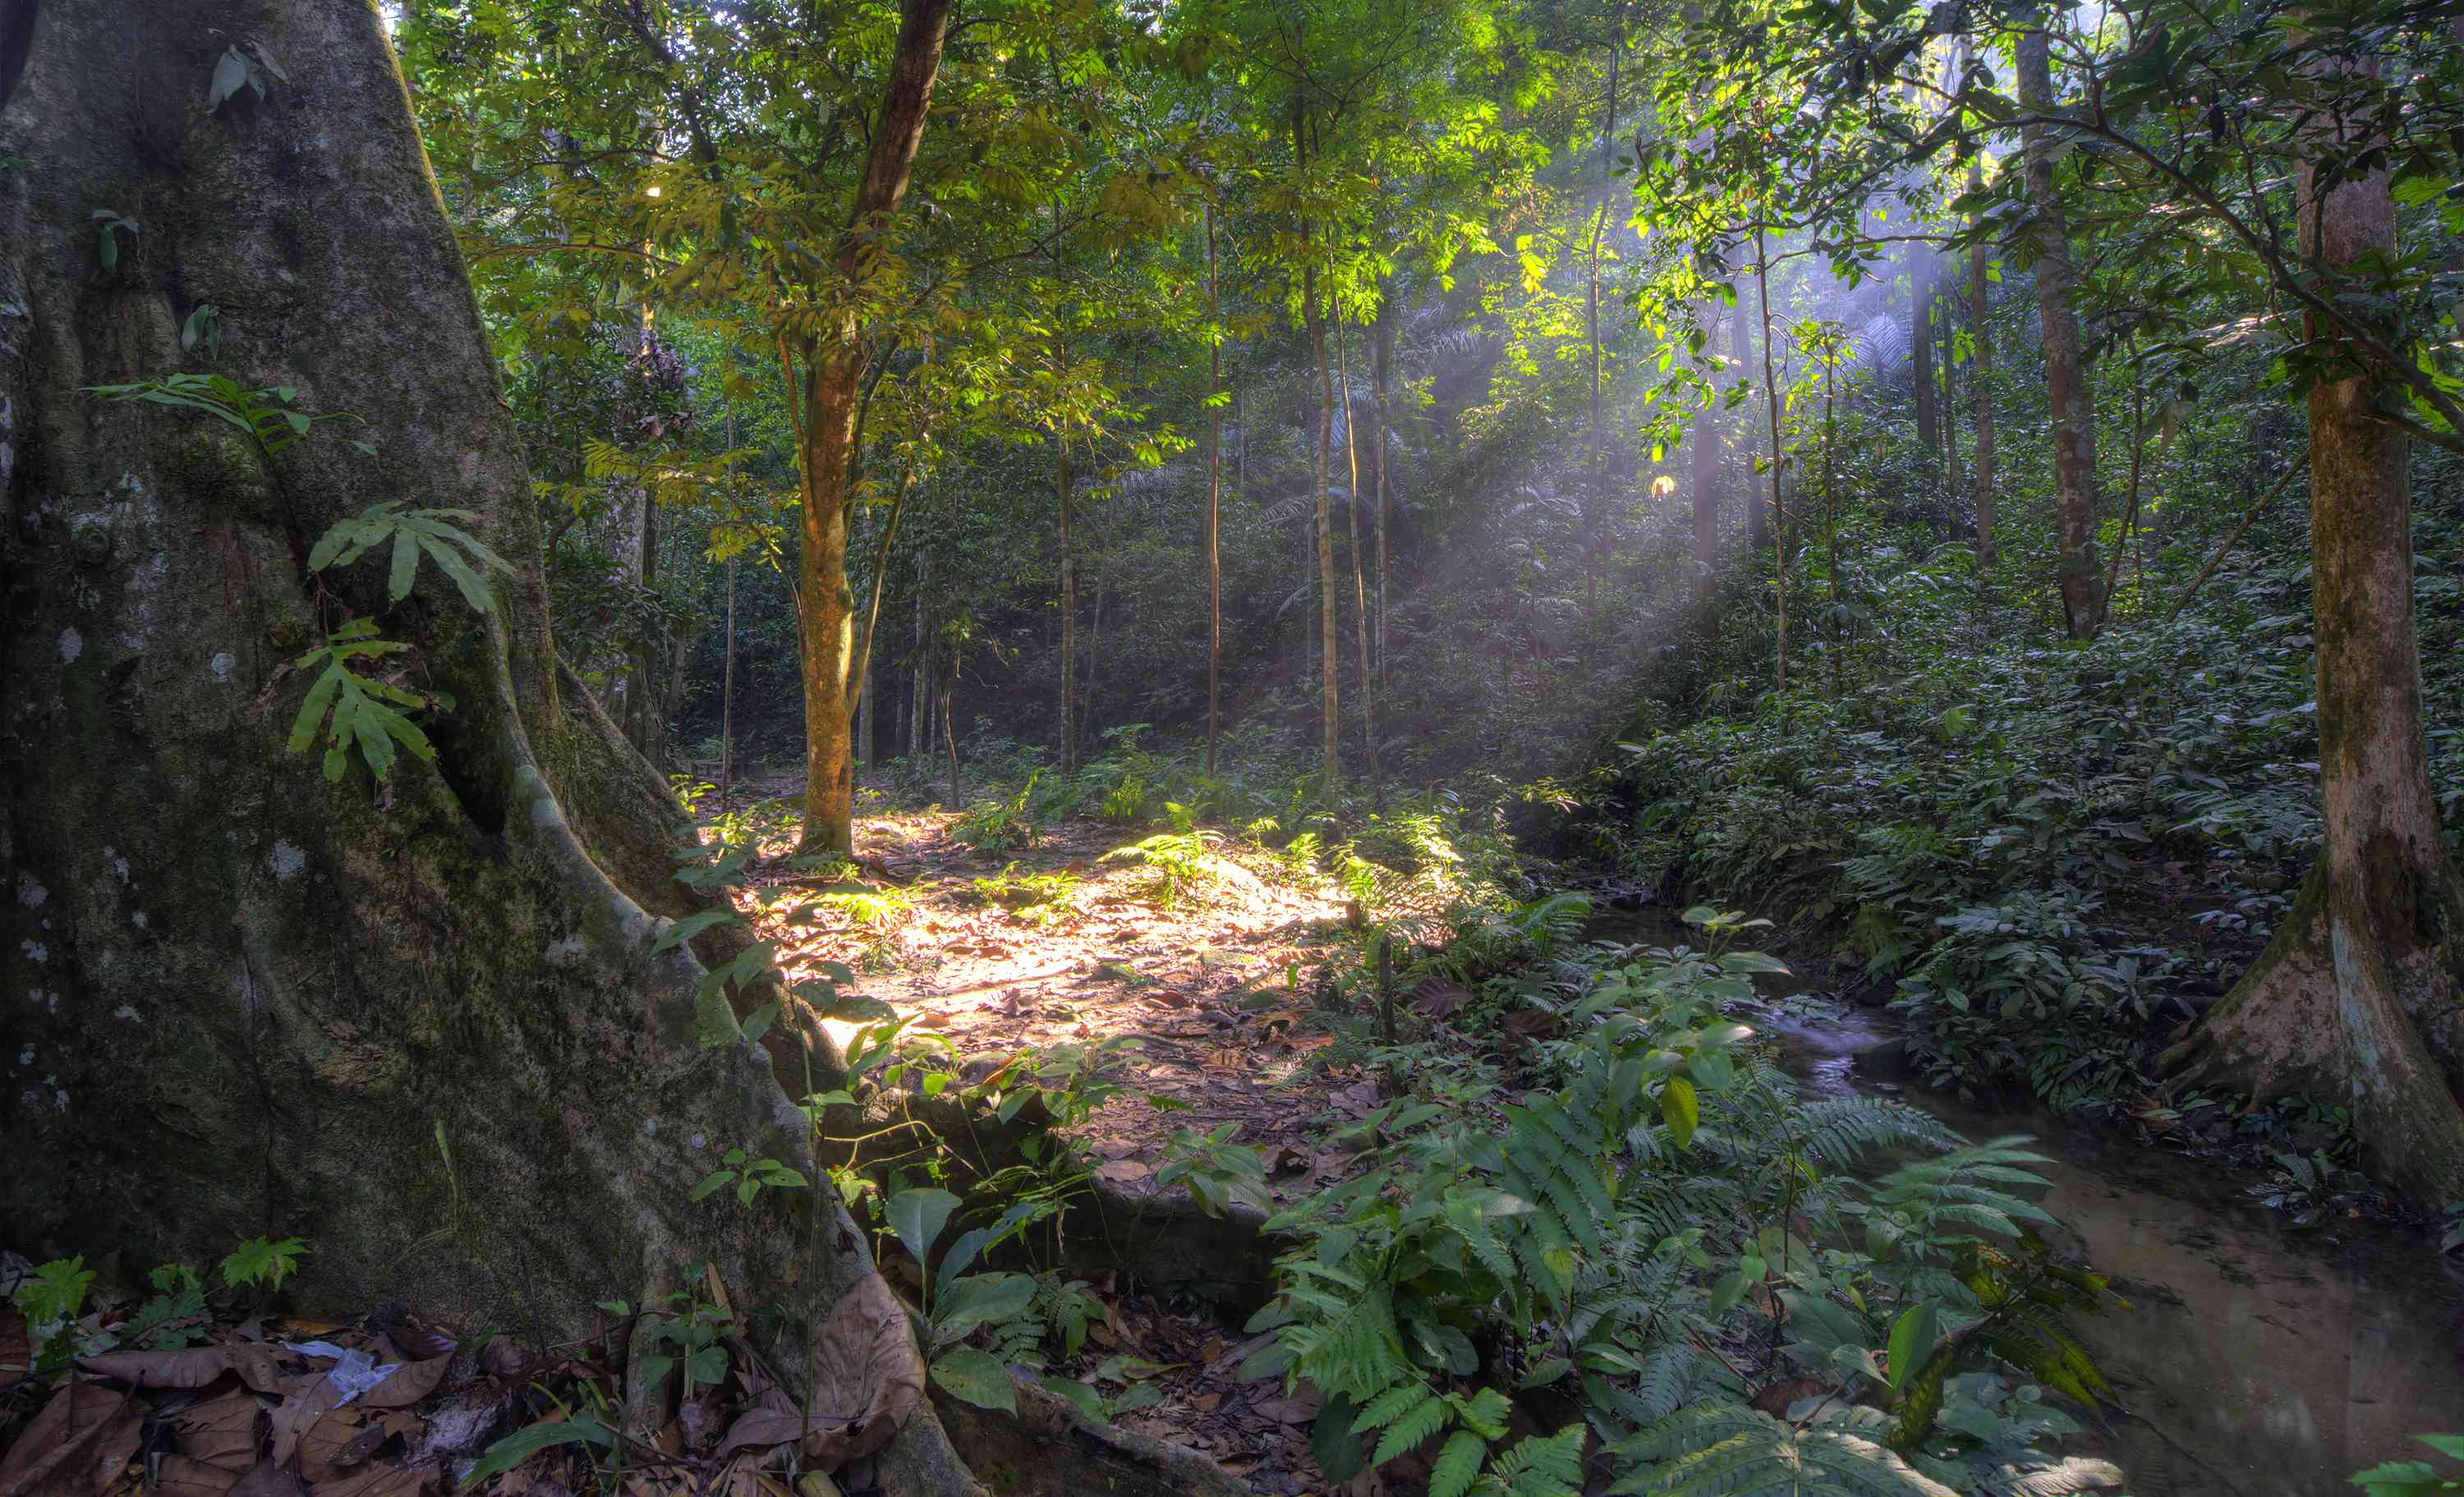 tropical forest at Kanching Park in Selangor, Malaysia